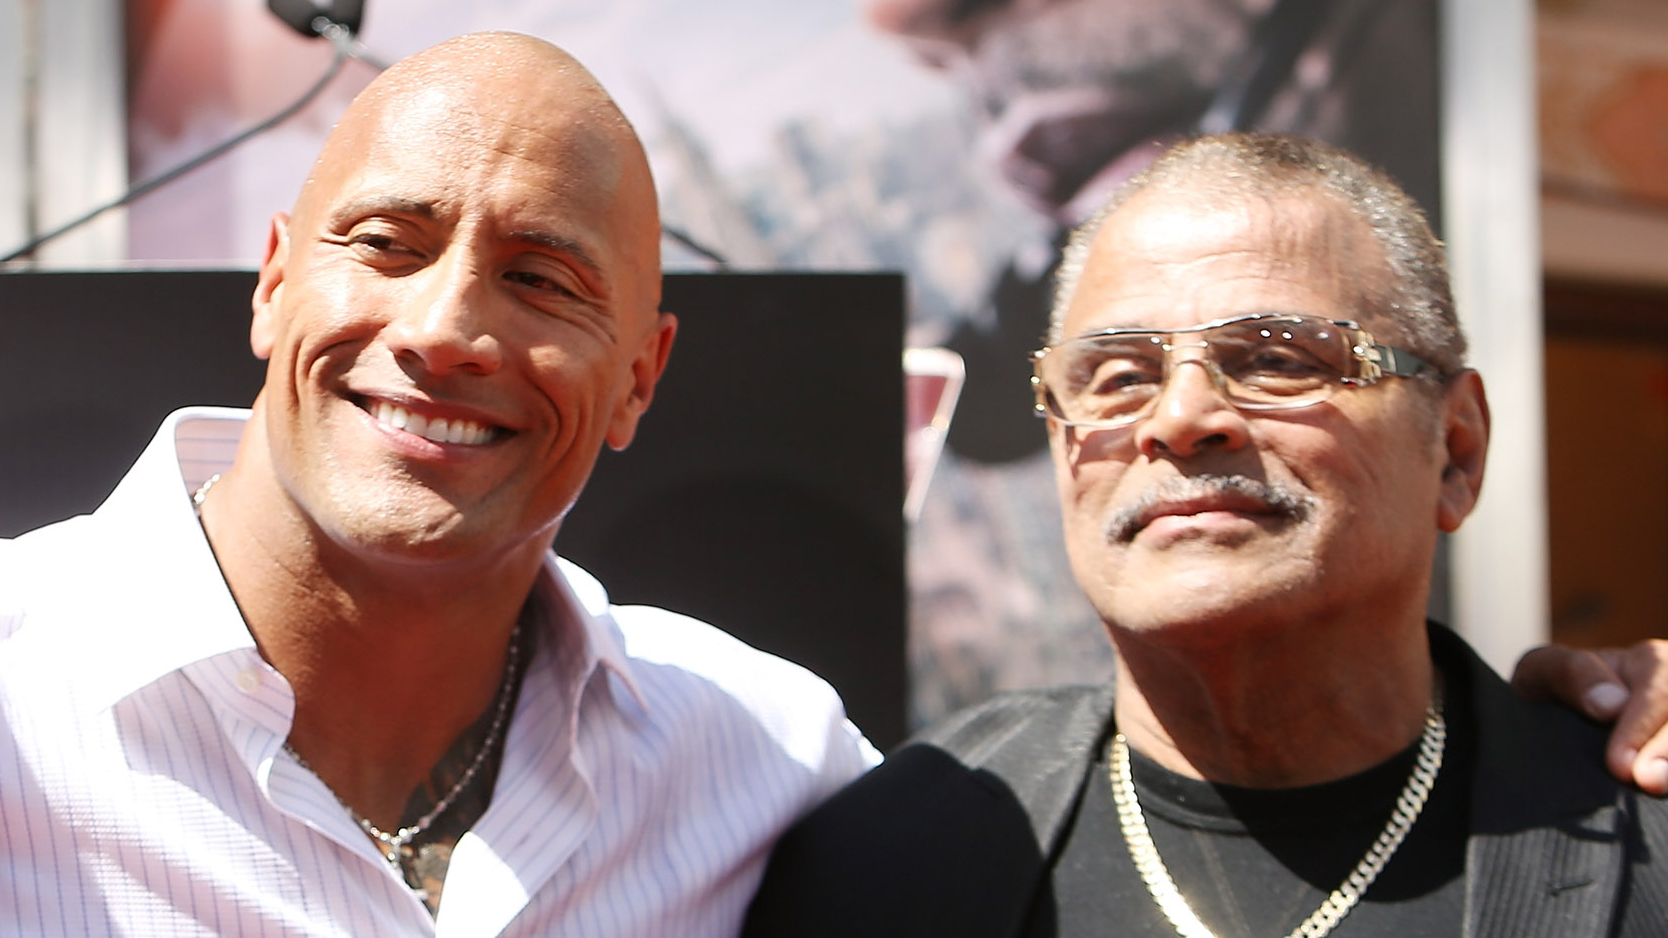 Westlake Legal Group dwayne-johnson-dad Dwayne 'The Rock' Johnson breaks silence on 'barrier breaking' father's death: 'It's just pain' Tyler McCarthy fox-news/person/dwayne-the-rock-johnson fox-news/organization/wwe fox-news/entertainment/genres/viral fox-news/entertainment/events/departed fox-news/entertainment/celebrity-news fox news fnc/entertainment fnc article 6da2fb74-62b9-5a03-8946-c7b2fb611ca9